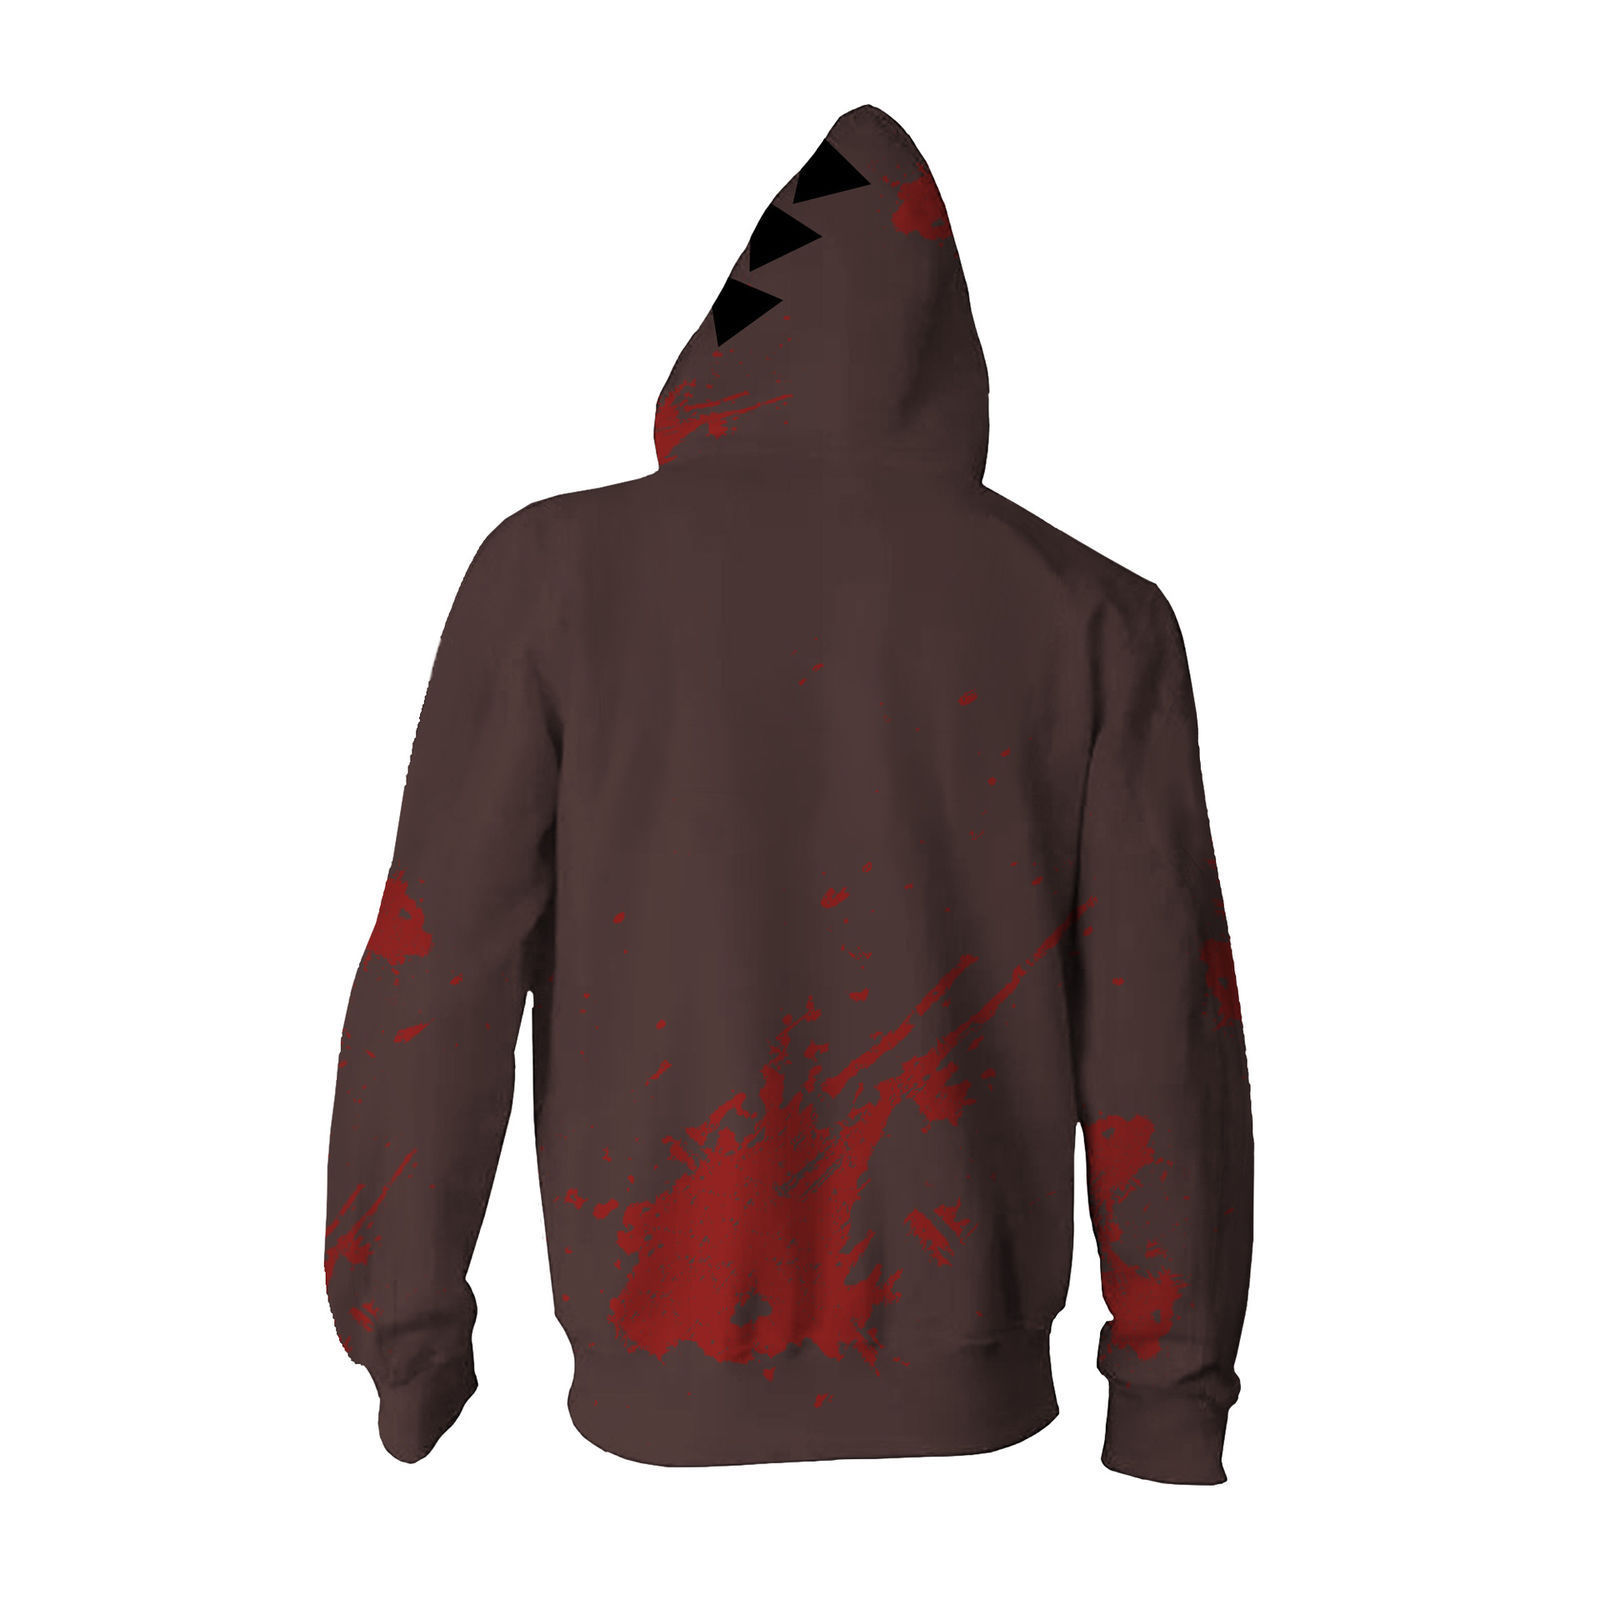 Angels of Death Isaac·Foster Zack Cosplay Costume Zipper Hoodie Sweatshirt Coat